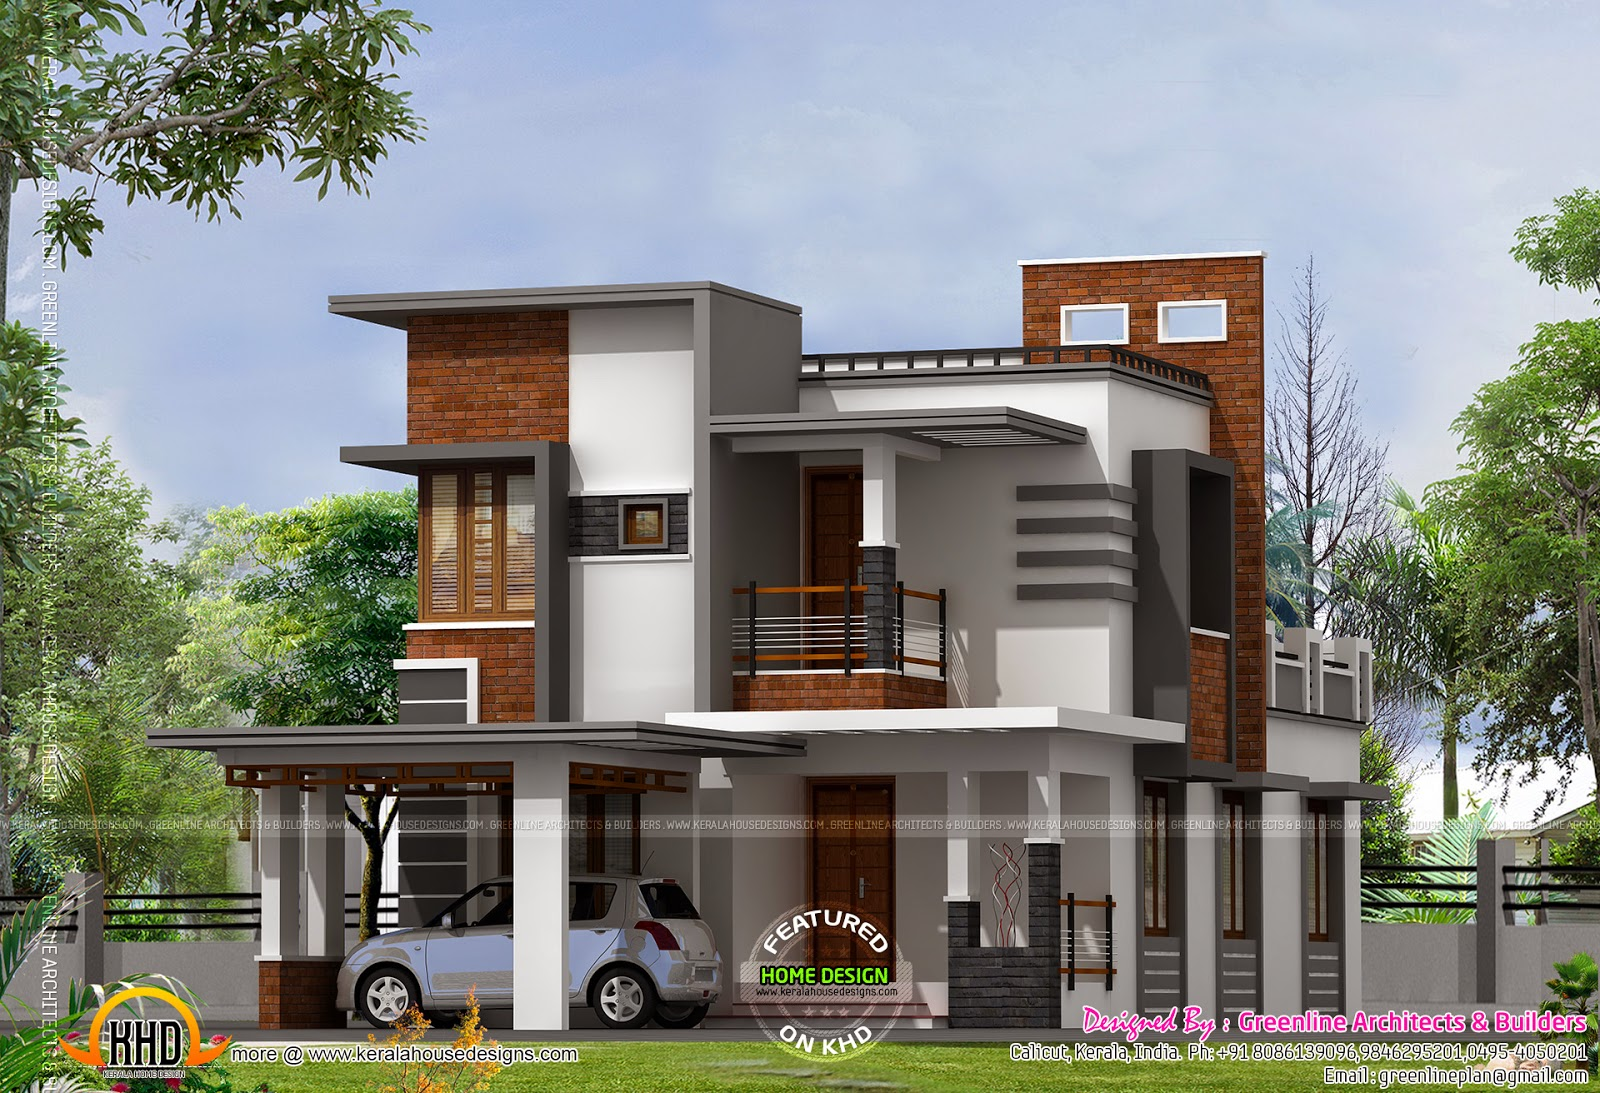 Low cost contemporary house kerala home design and floor for Modern design home plans